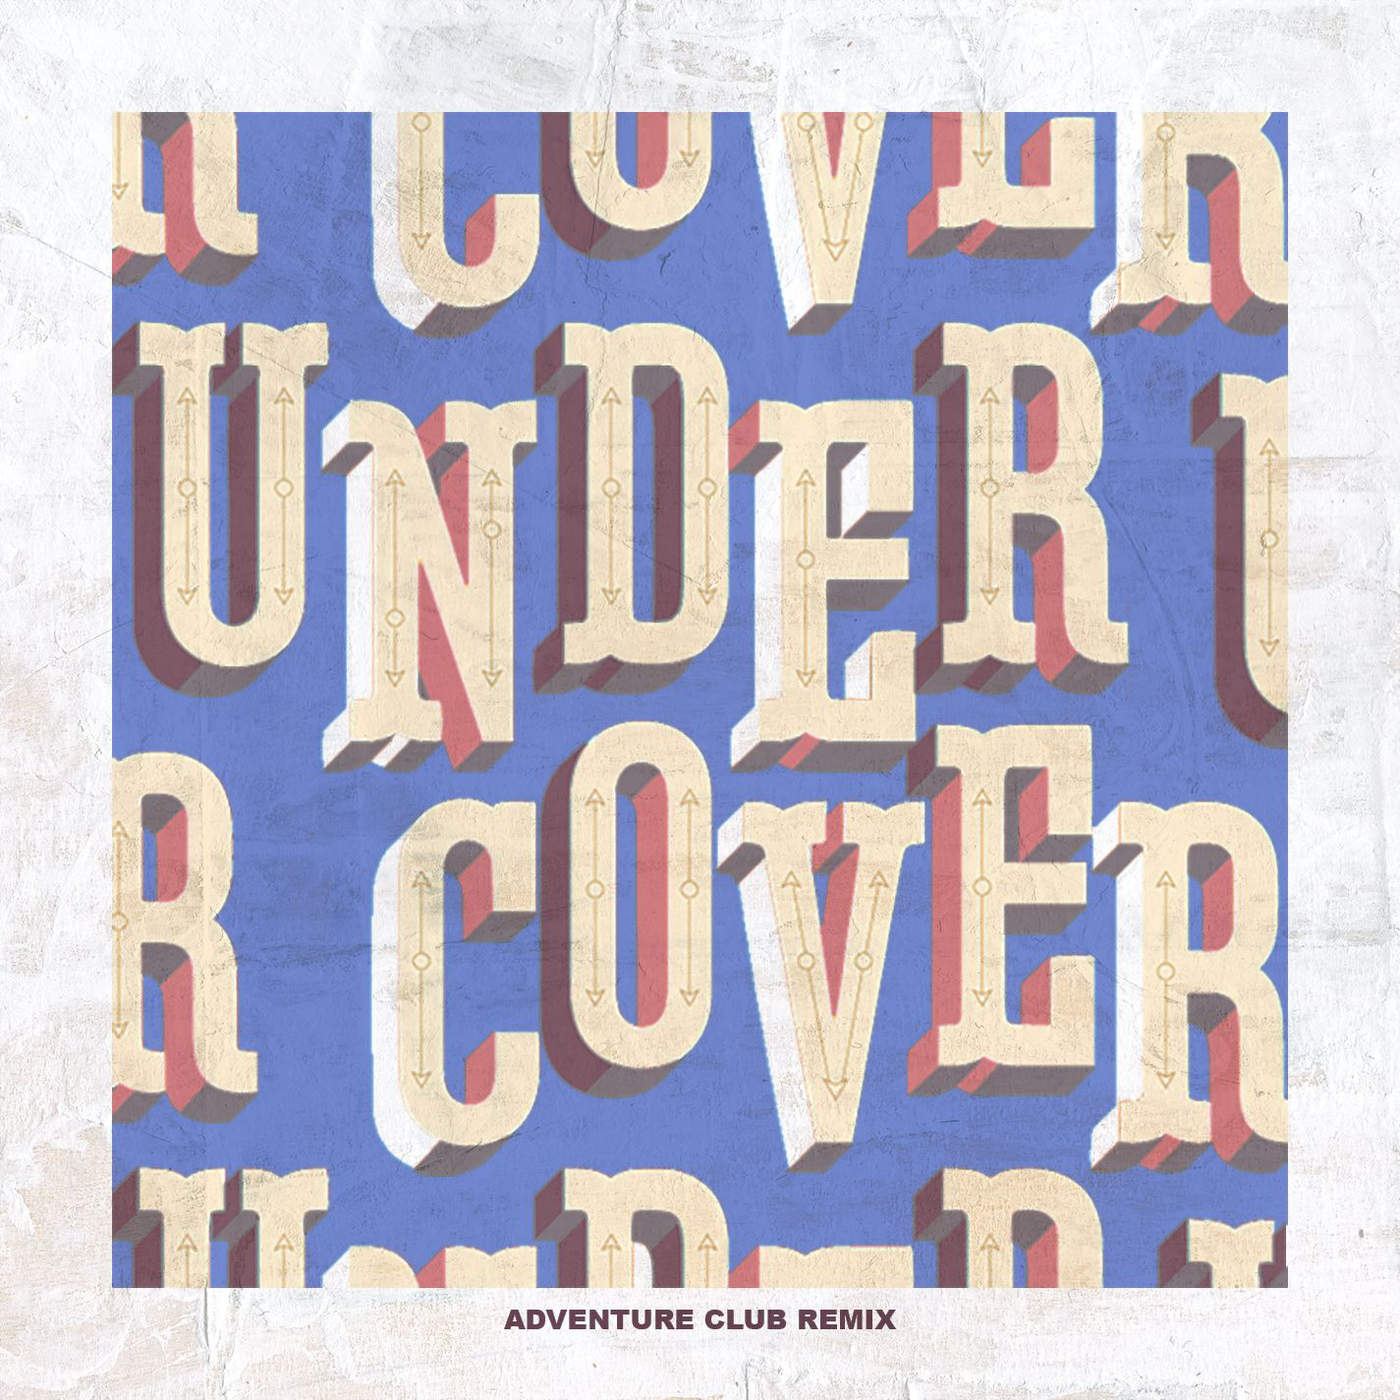 Kehlani - Undercover (Adventure Club Remix) - Single Cover